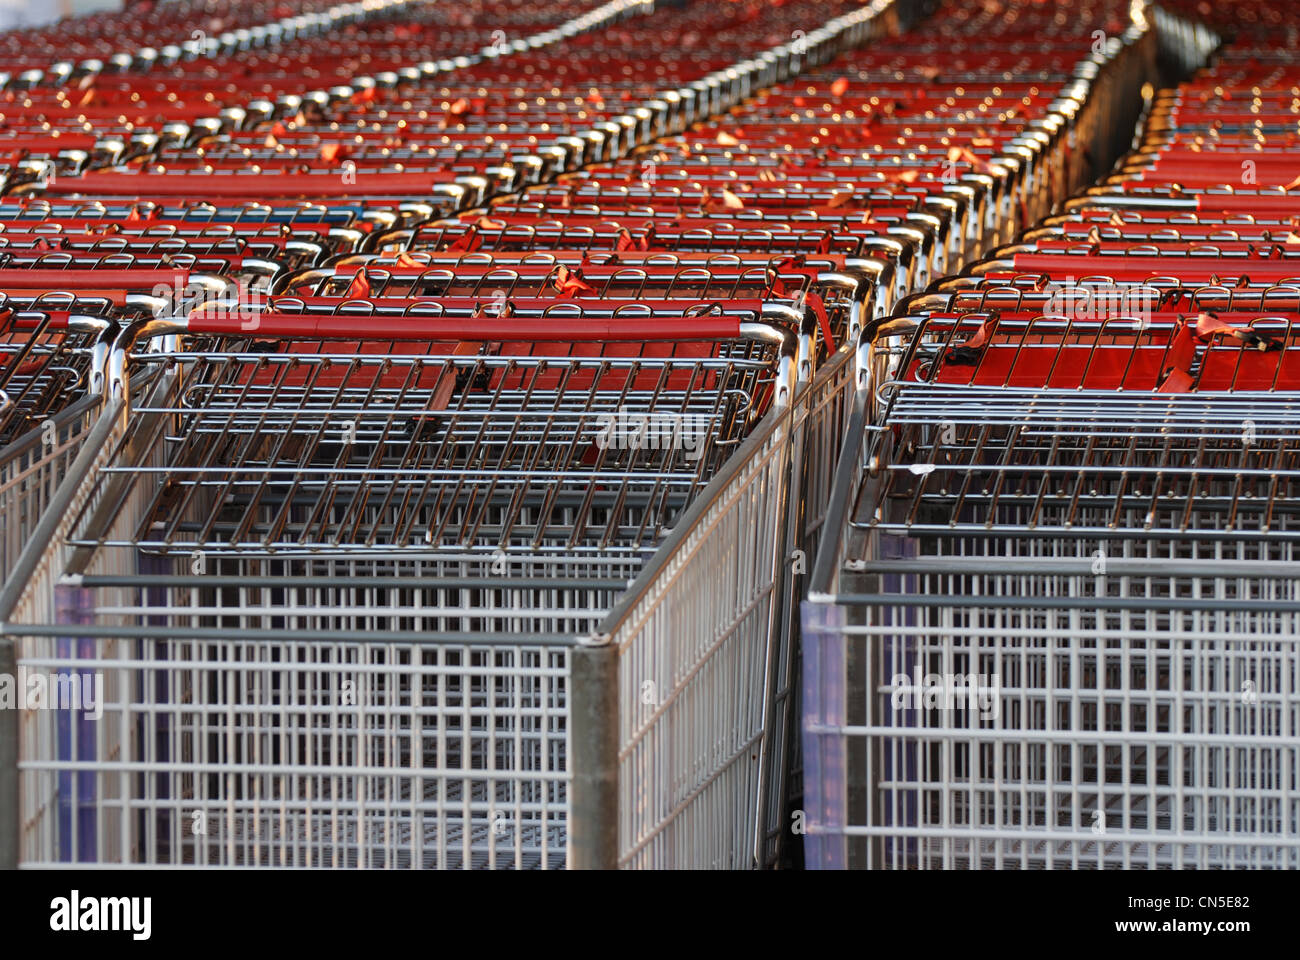 Shopping cart outside mall - Stock Image